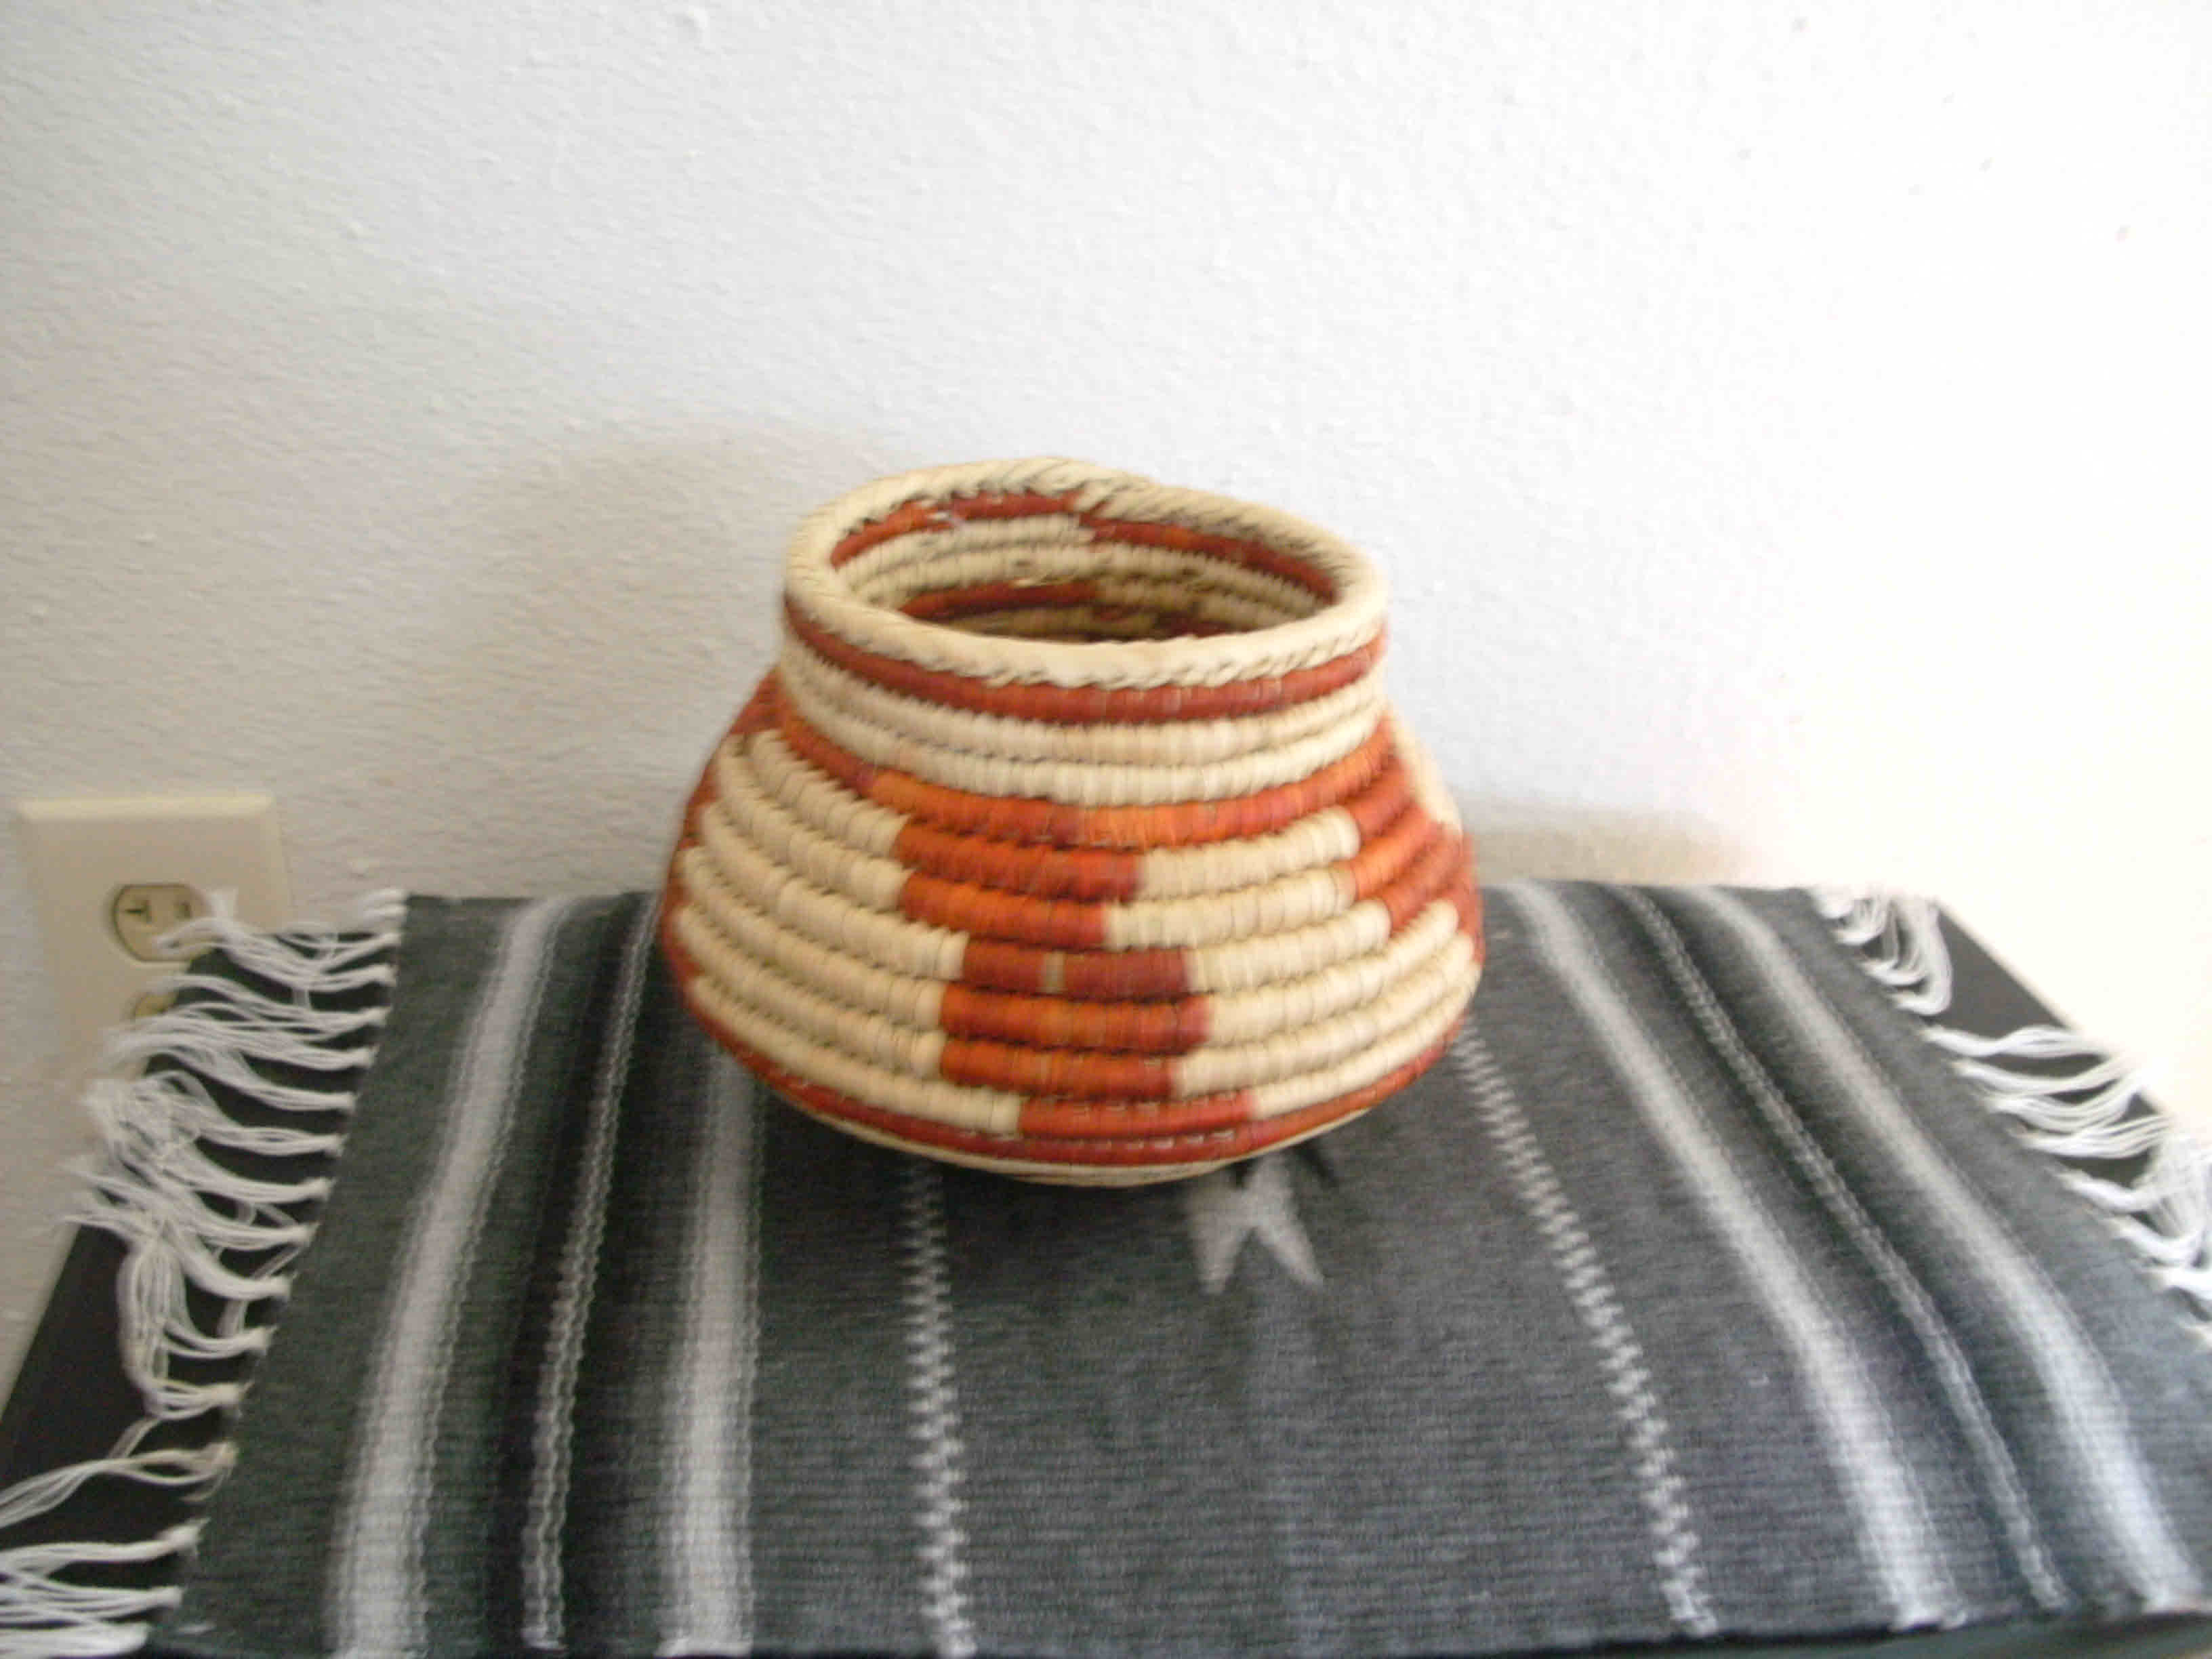 Southwest Indian Small Storm Design Bowl Baskets